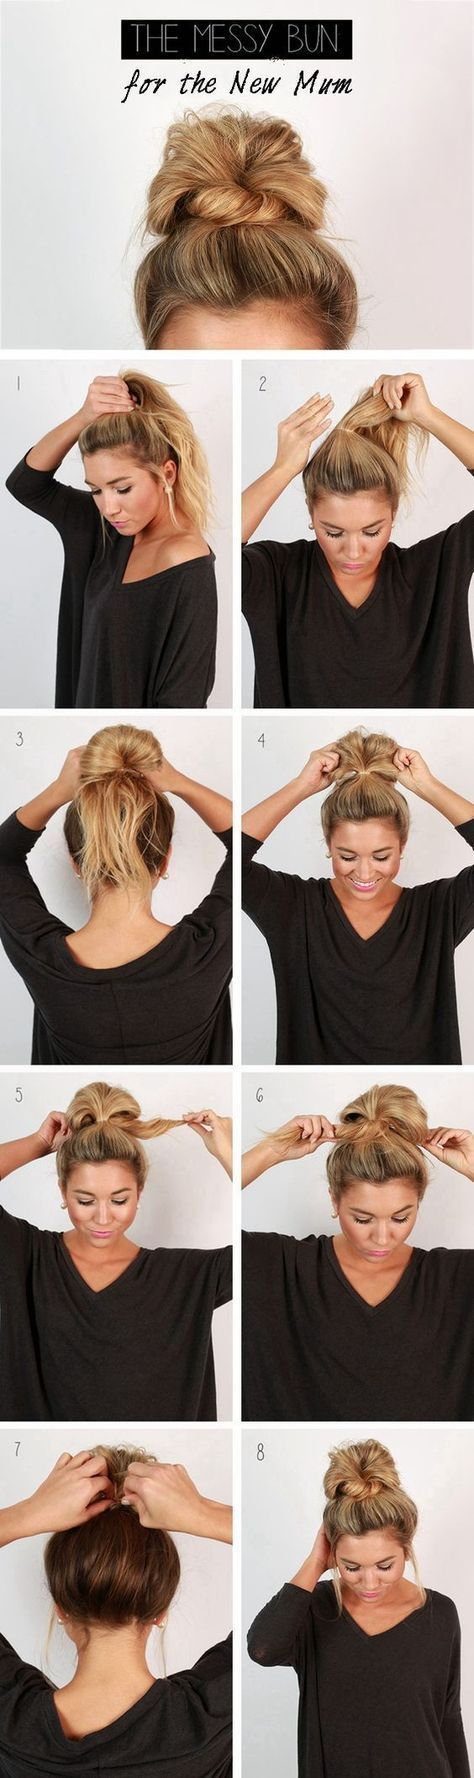 10 Coiffures Tremendous Faciles A Faire Pour Etre Cute A L Ecole Sans Effort A Coiffures Cute Effort E Hair Styles Long Hair Styles Easy Updo Hairstyles